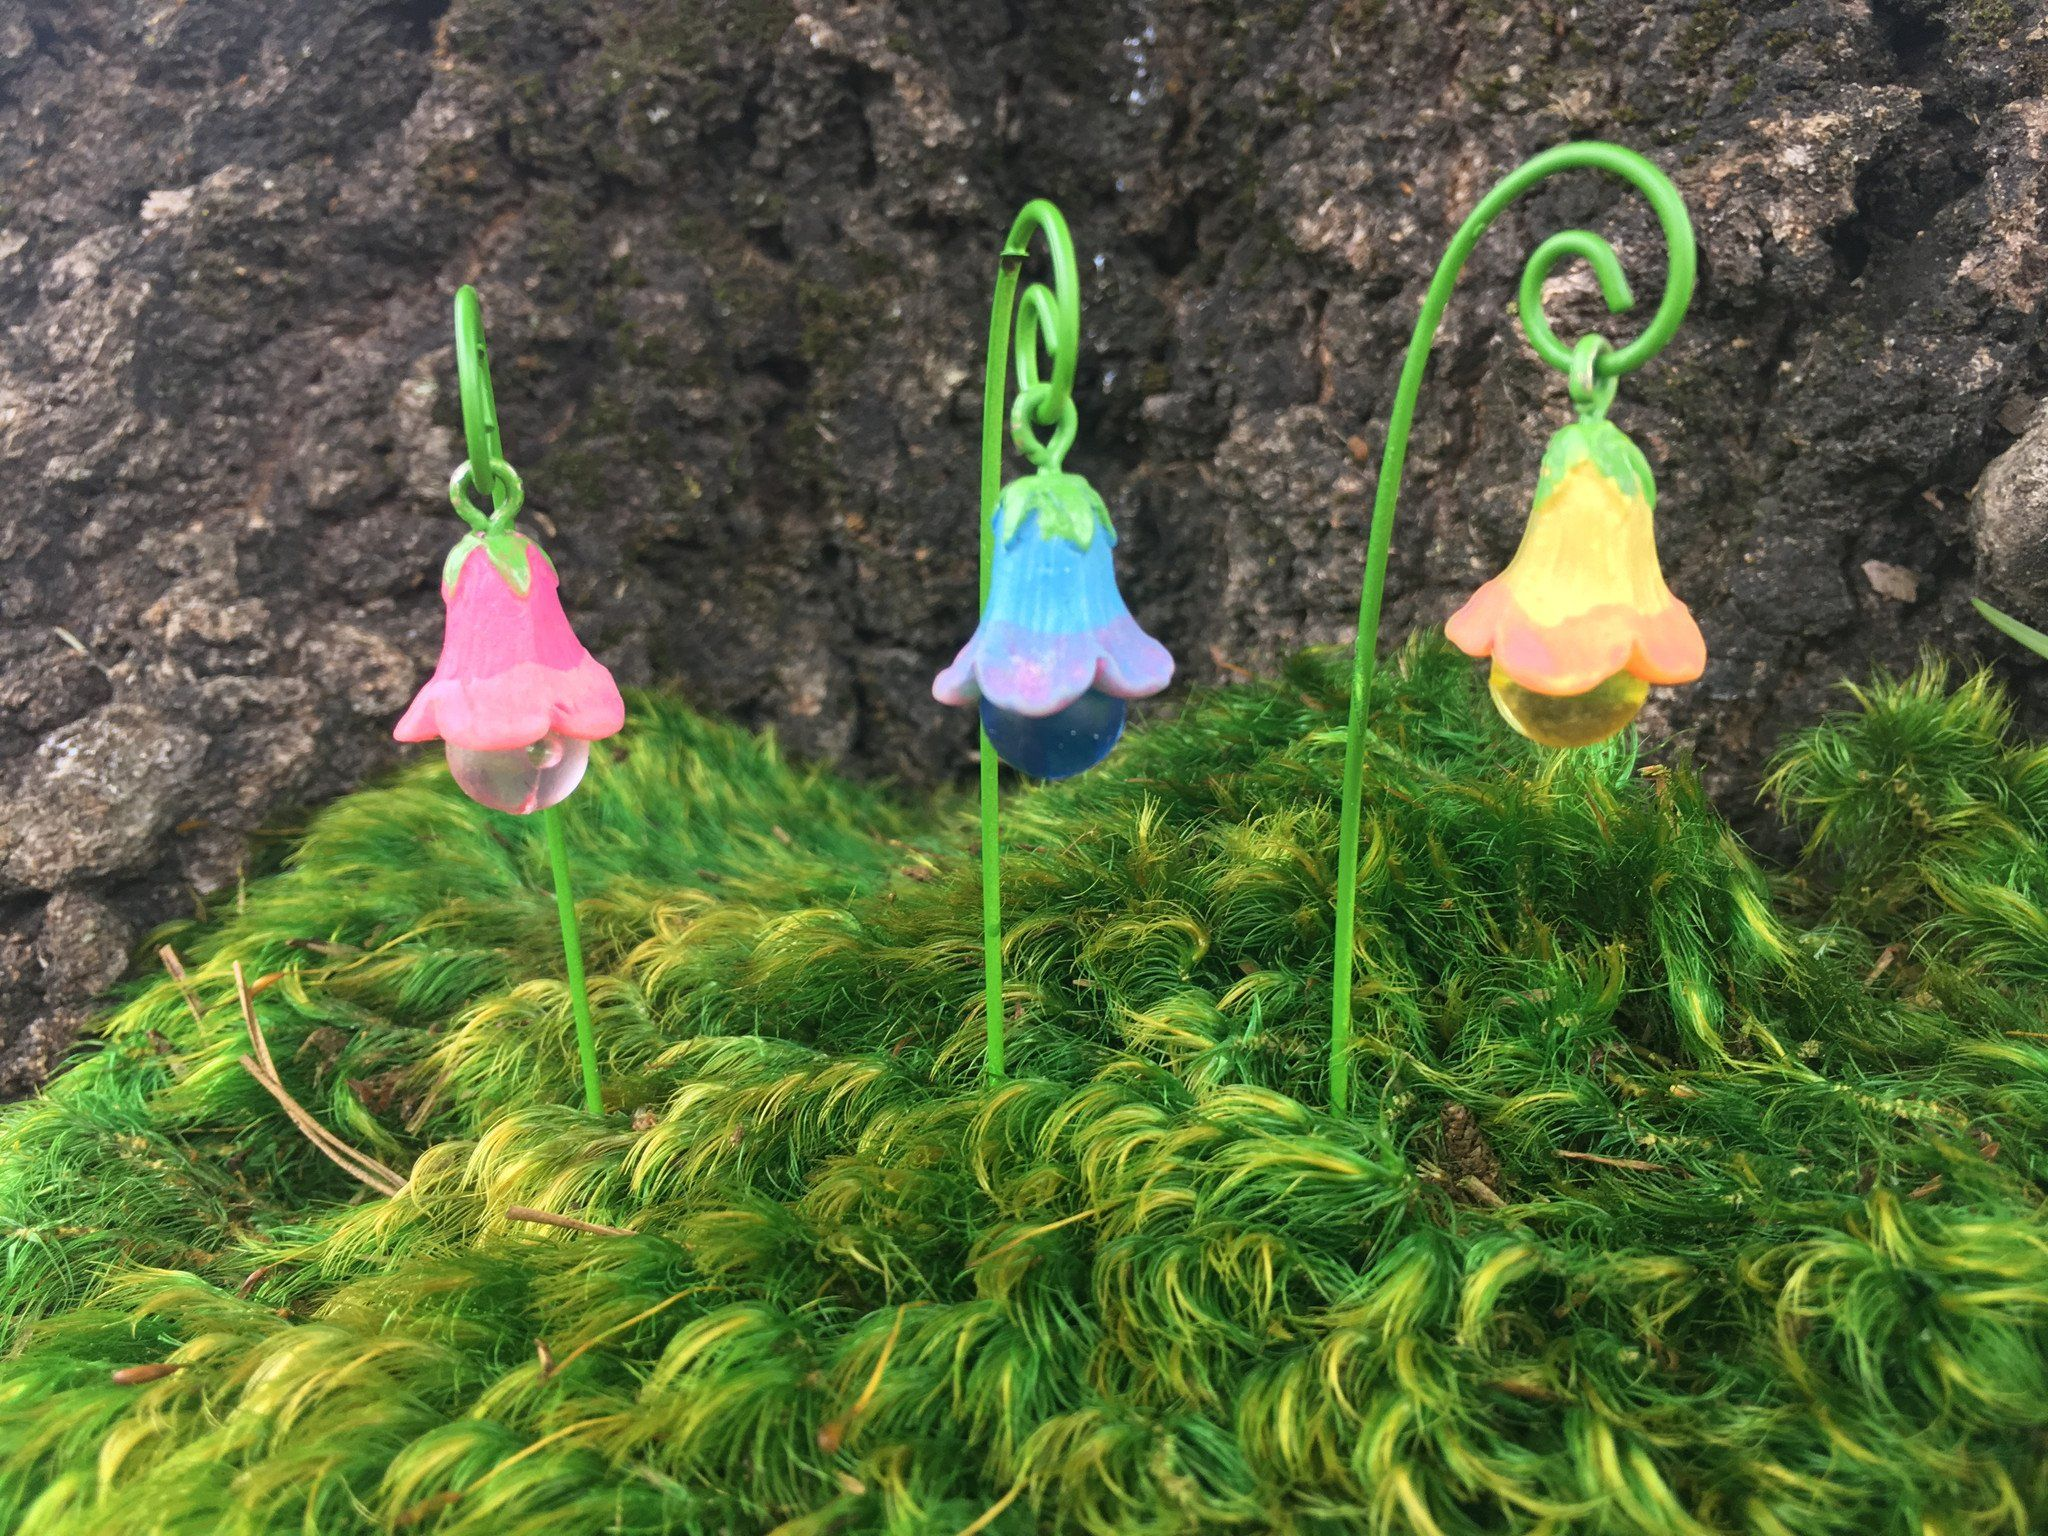 Glow in the dark bell flower garden decor | Walkways, Gardens and Flower